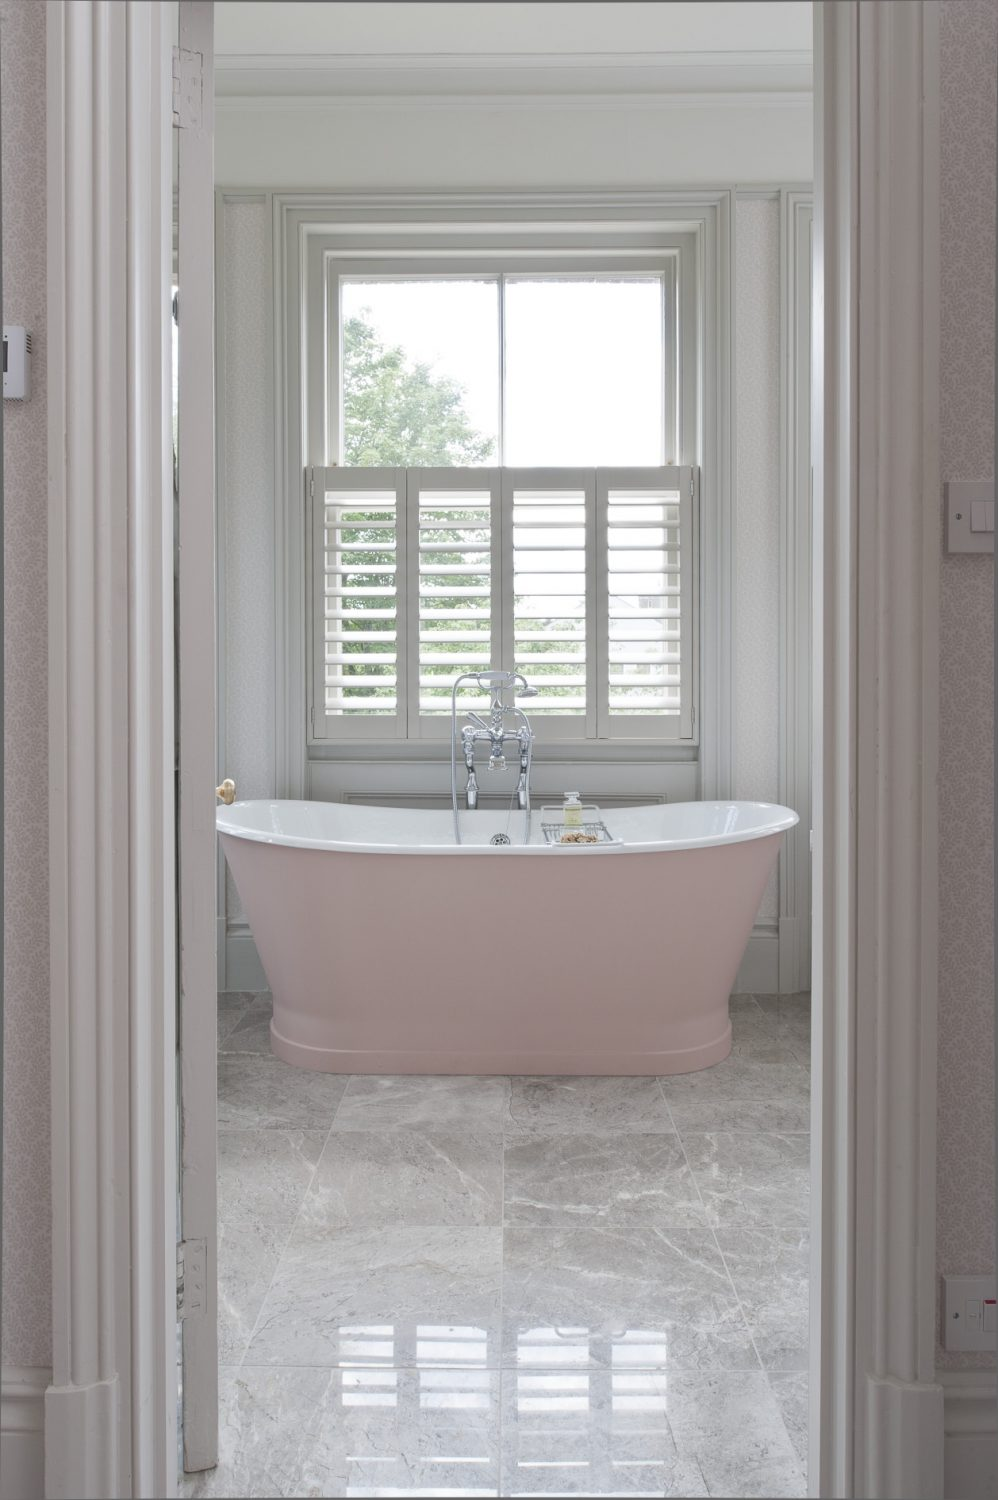 The shell pink bath sits in the centre of the marble-floored master bathroom; shutters provide privacy without losing light